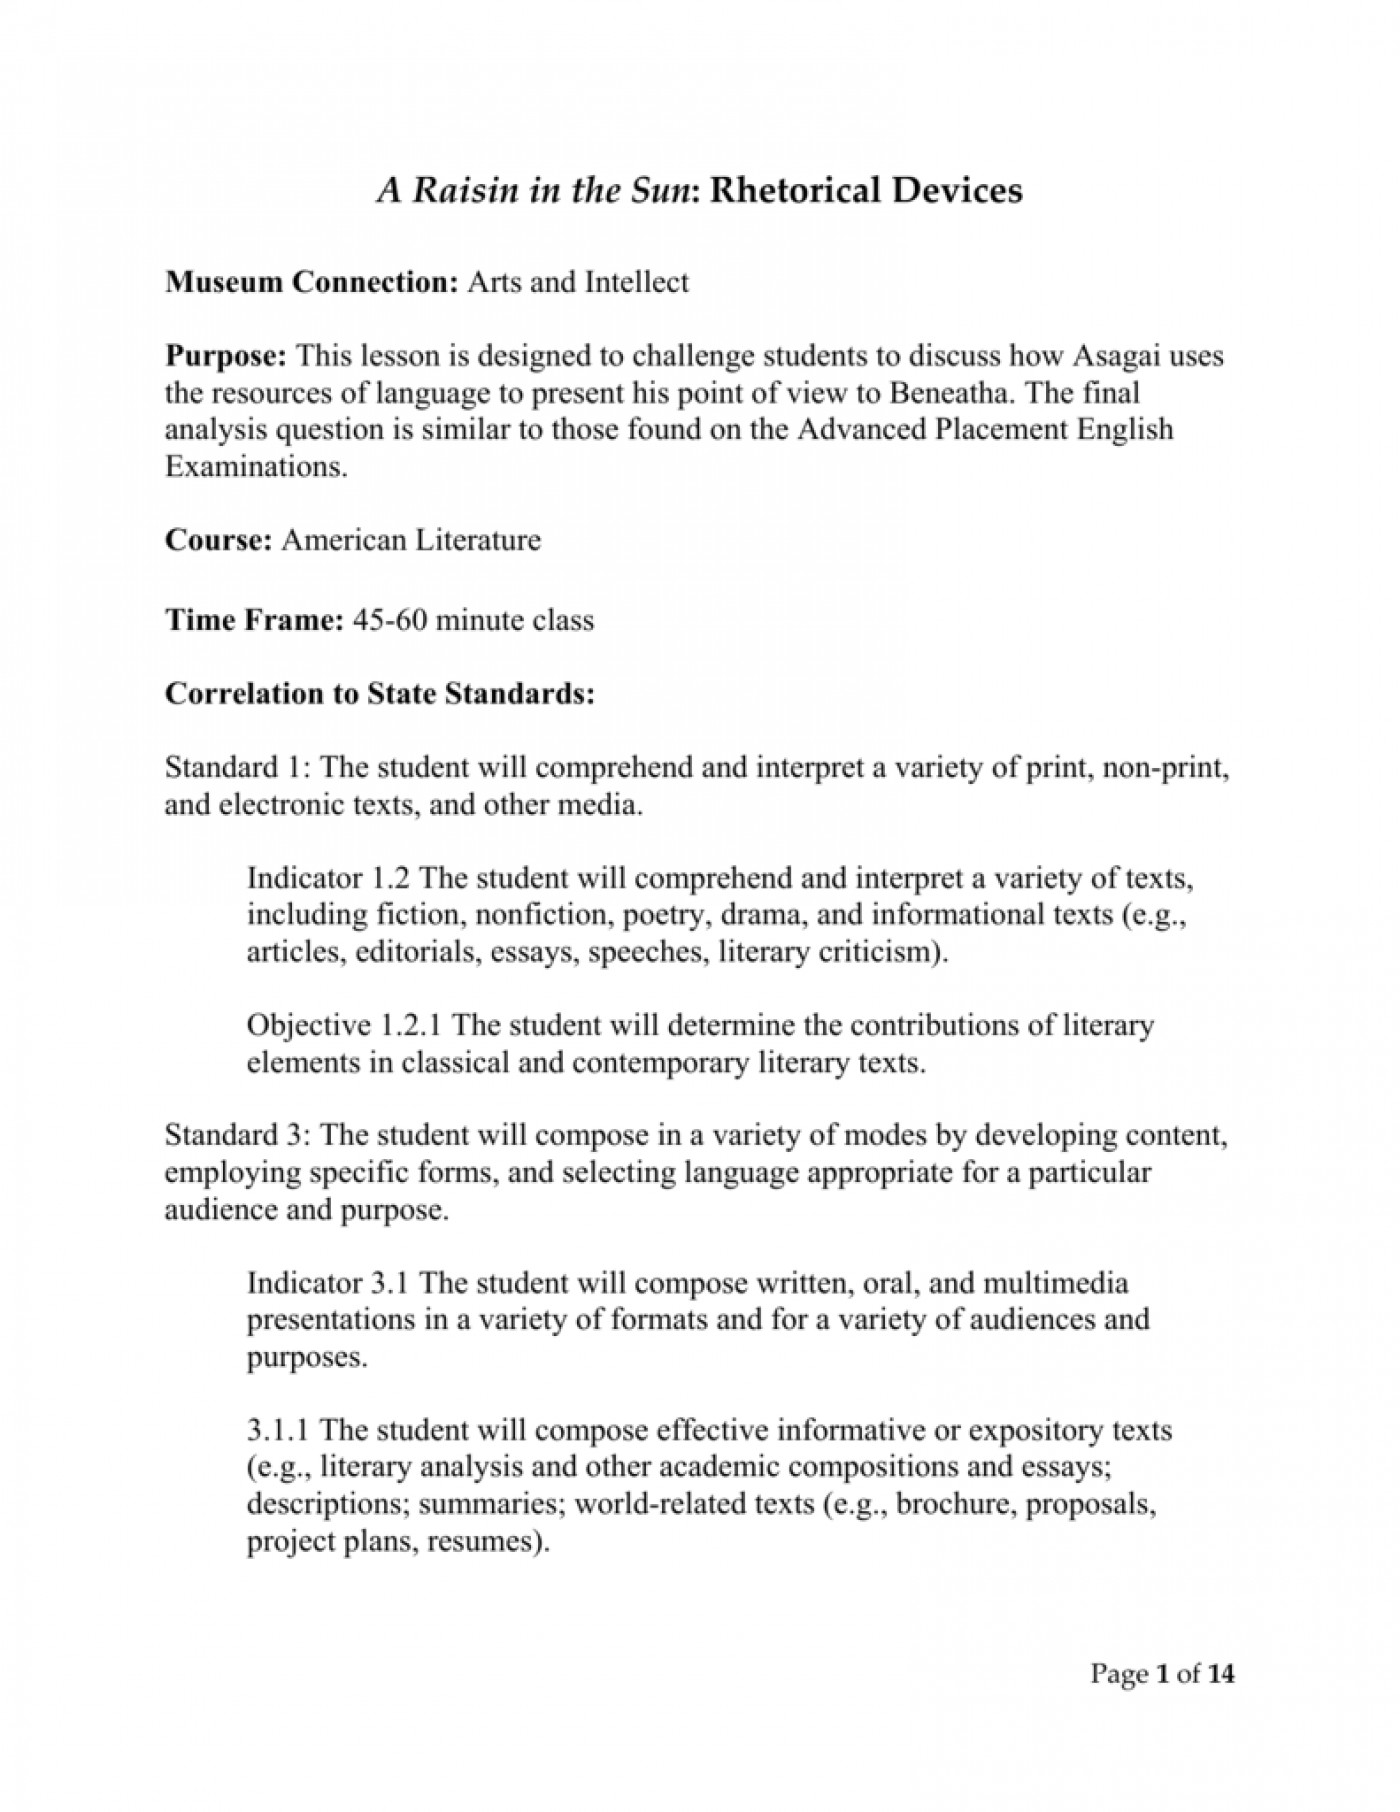 006 008718601 1 Essay Example Why Do Authors Use Rhetorical Devices In Frightening Essays Quizlet Brainly 1400